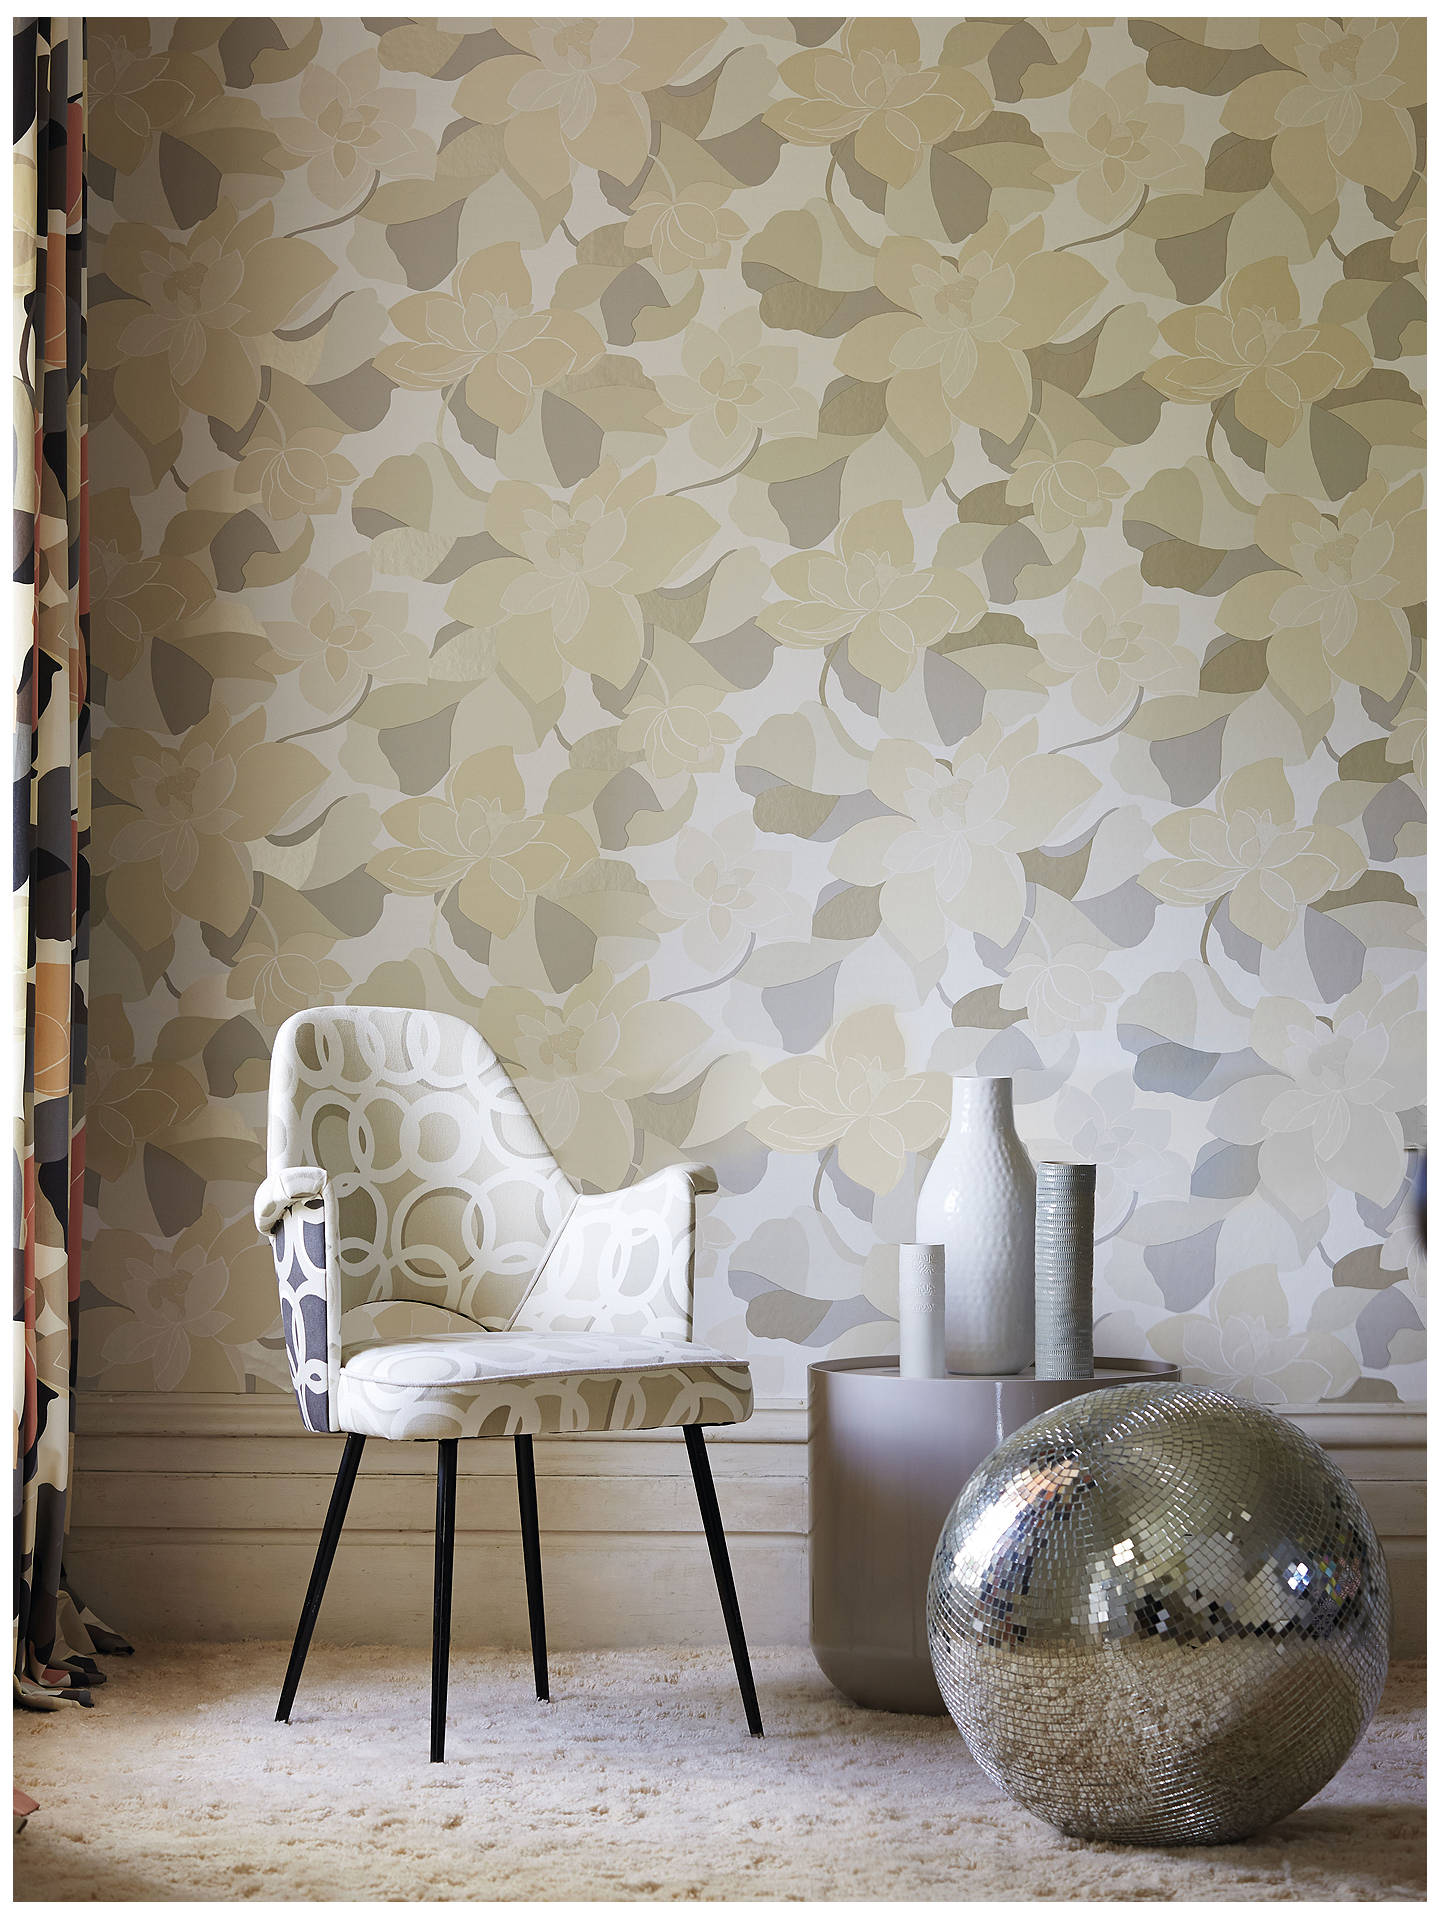 BuyScion Diva Paste The Wall Wallpaper 110859 Online At Johnlewis